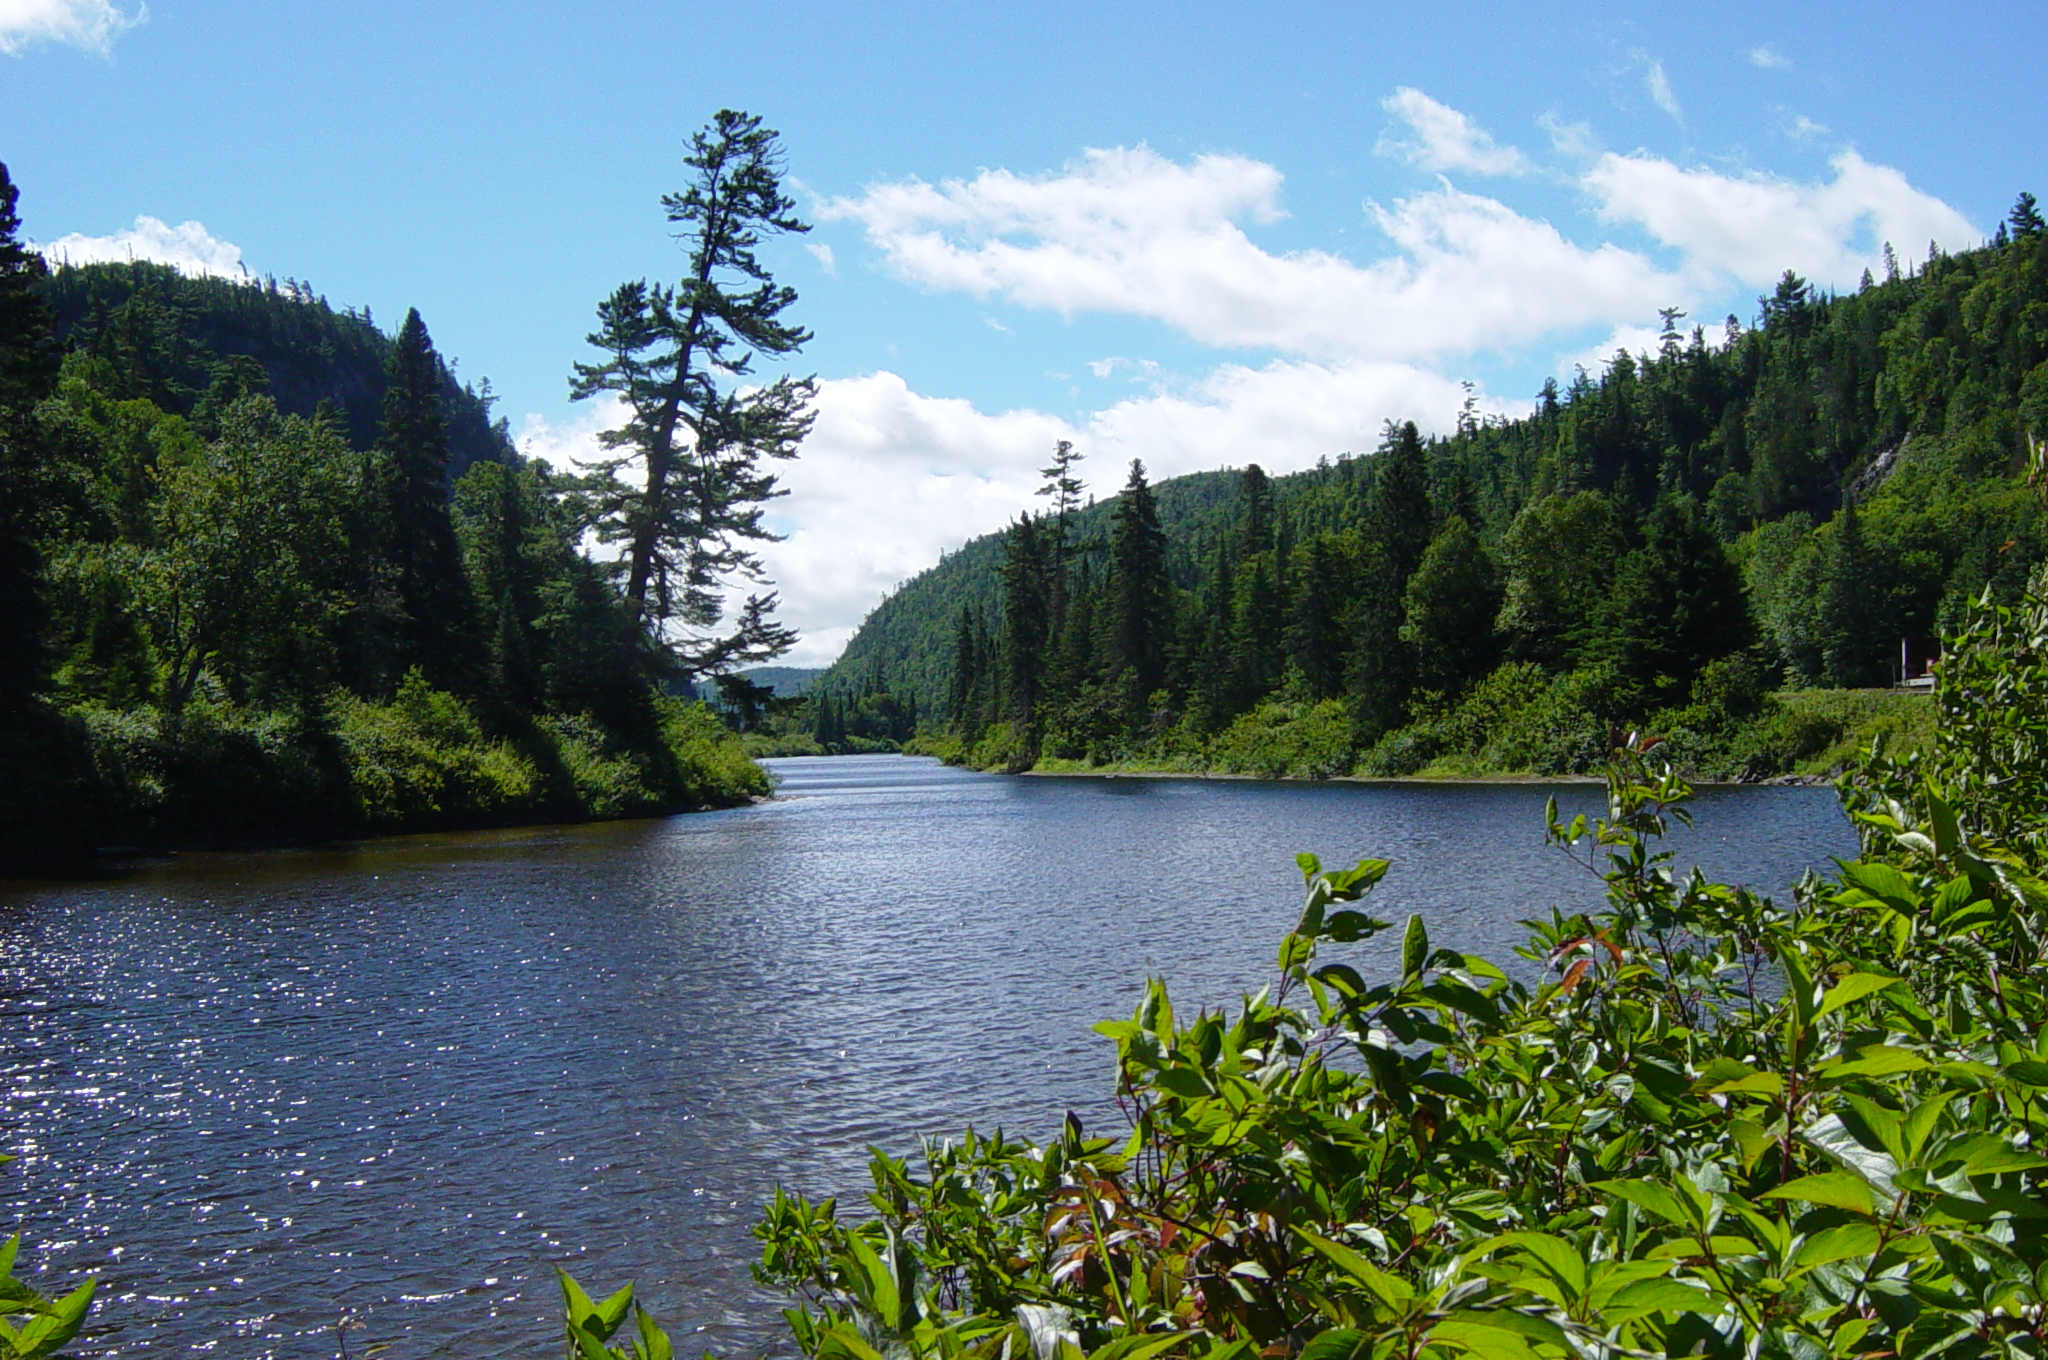 File:Agawa River, Ontario.jpg  Wikimedia Commons